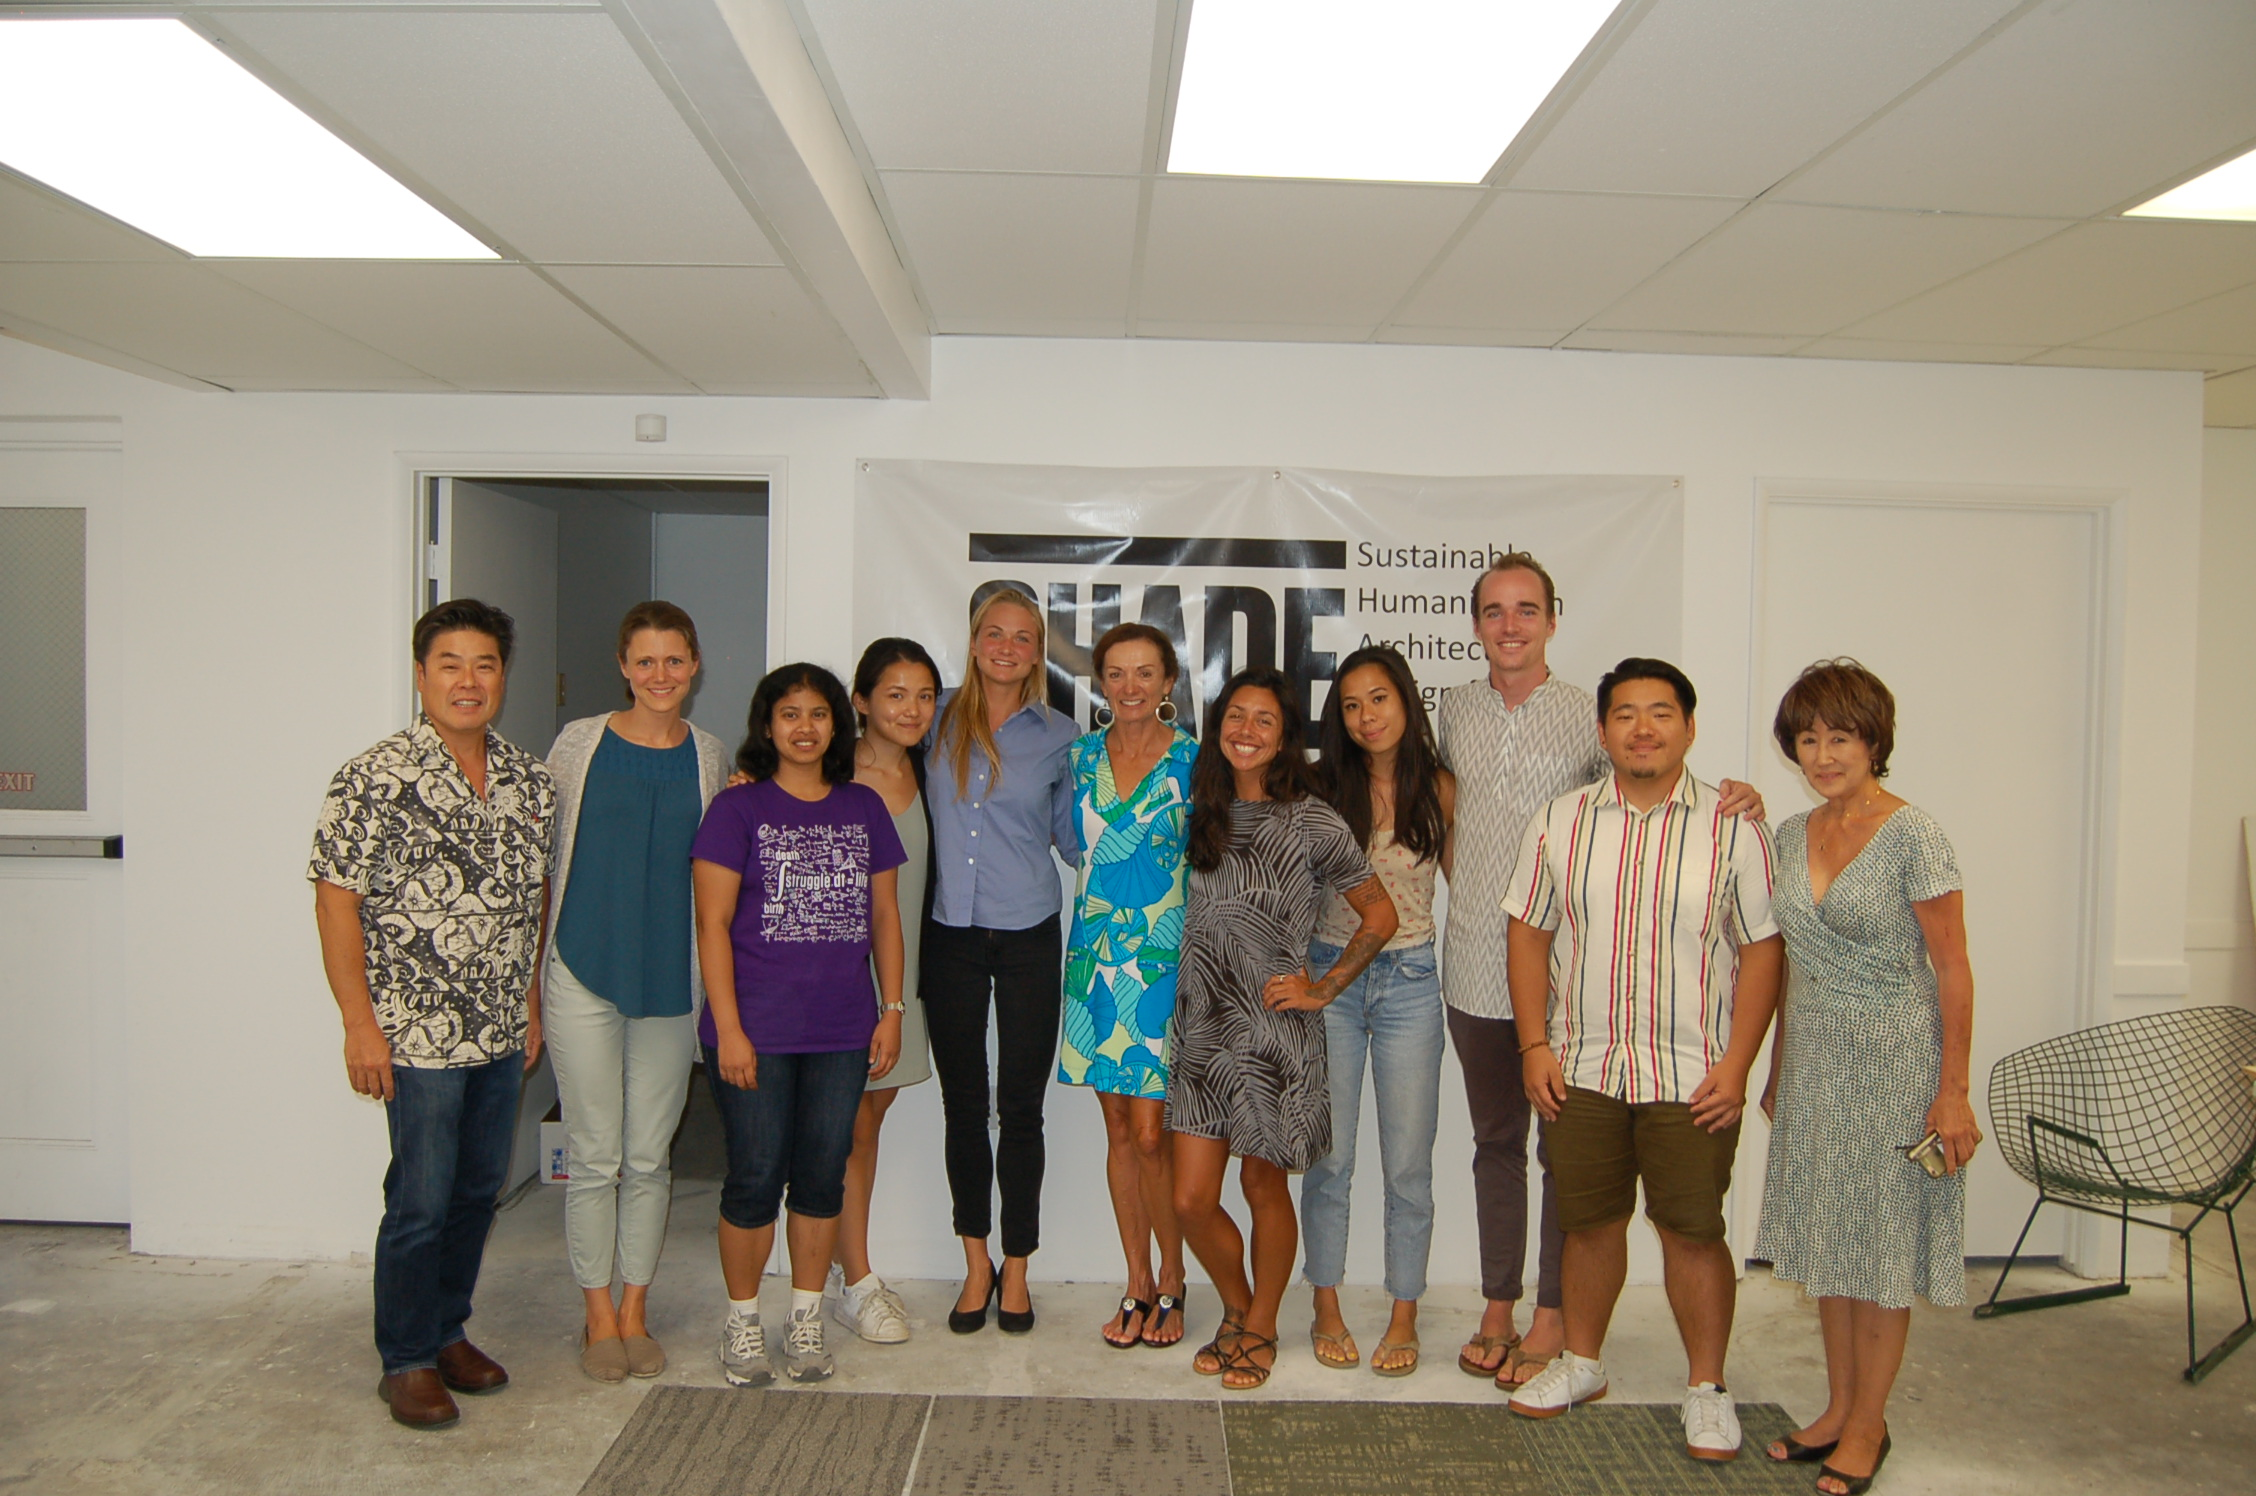 Dean Sakamoto, Danielle Schaeffner, Onam Bisht, Lee Hao Rong, Kelsey Colpitts, Lori McCarney, Justine Espiritu, Connie Kwan, Kyler Carlson, Kevin Kim and Sharon Schneider  (left to right)